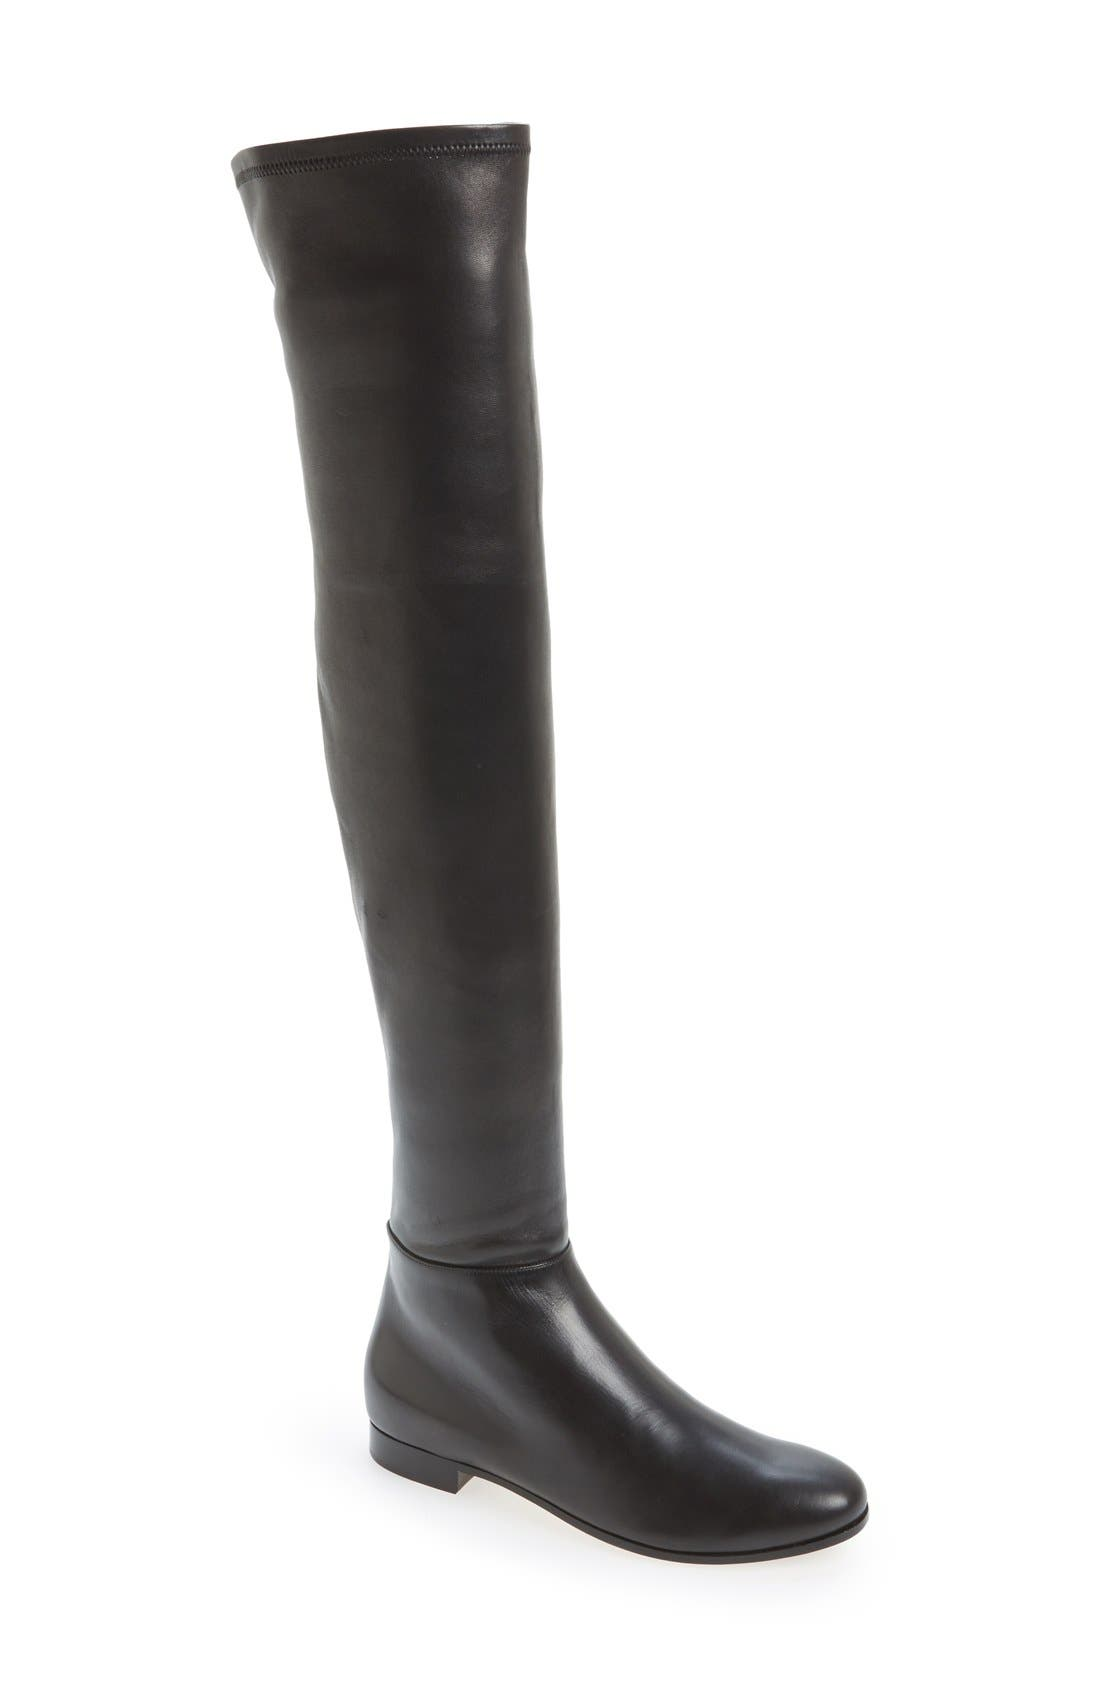 Main Image - Jimmy Choo 'Myren' Over the Knee Boot (Women)